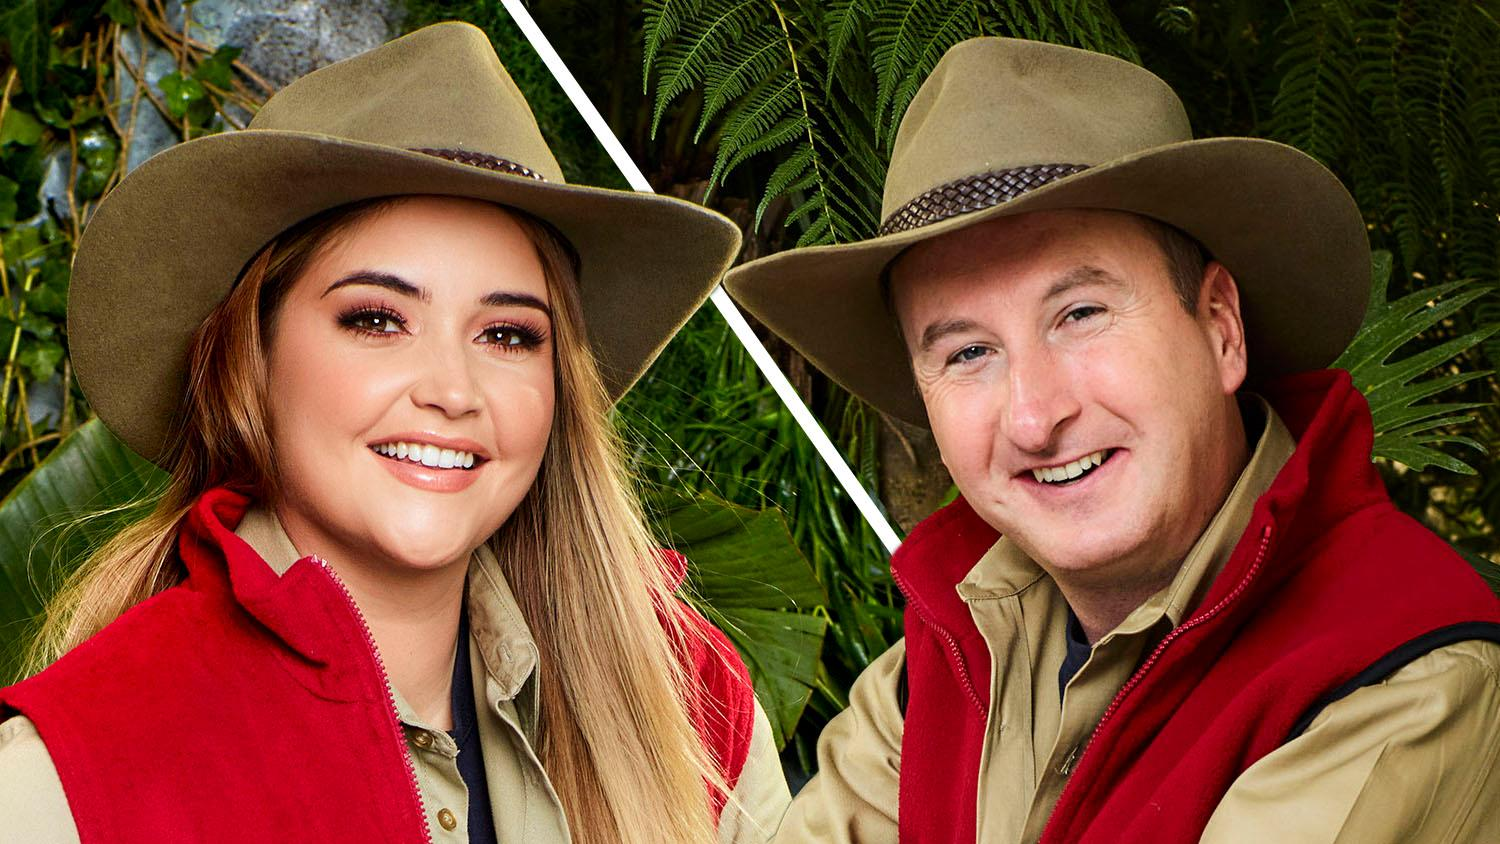 I'm A Celeb 2019 final voting figures revealed - and it was so close